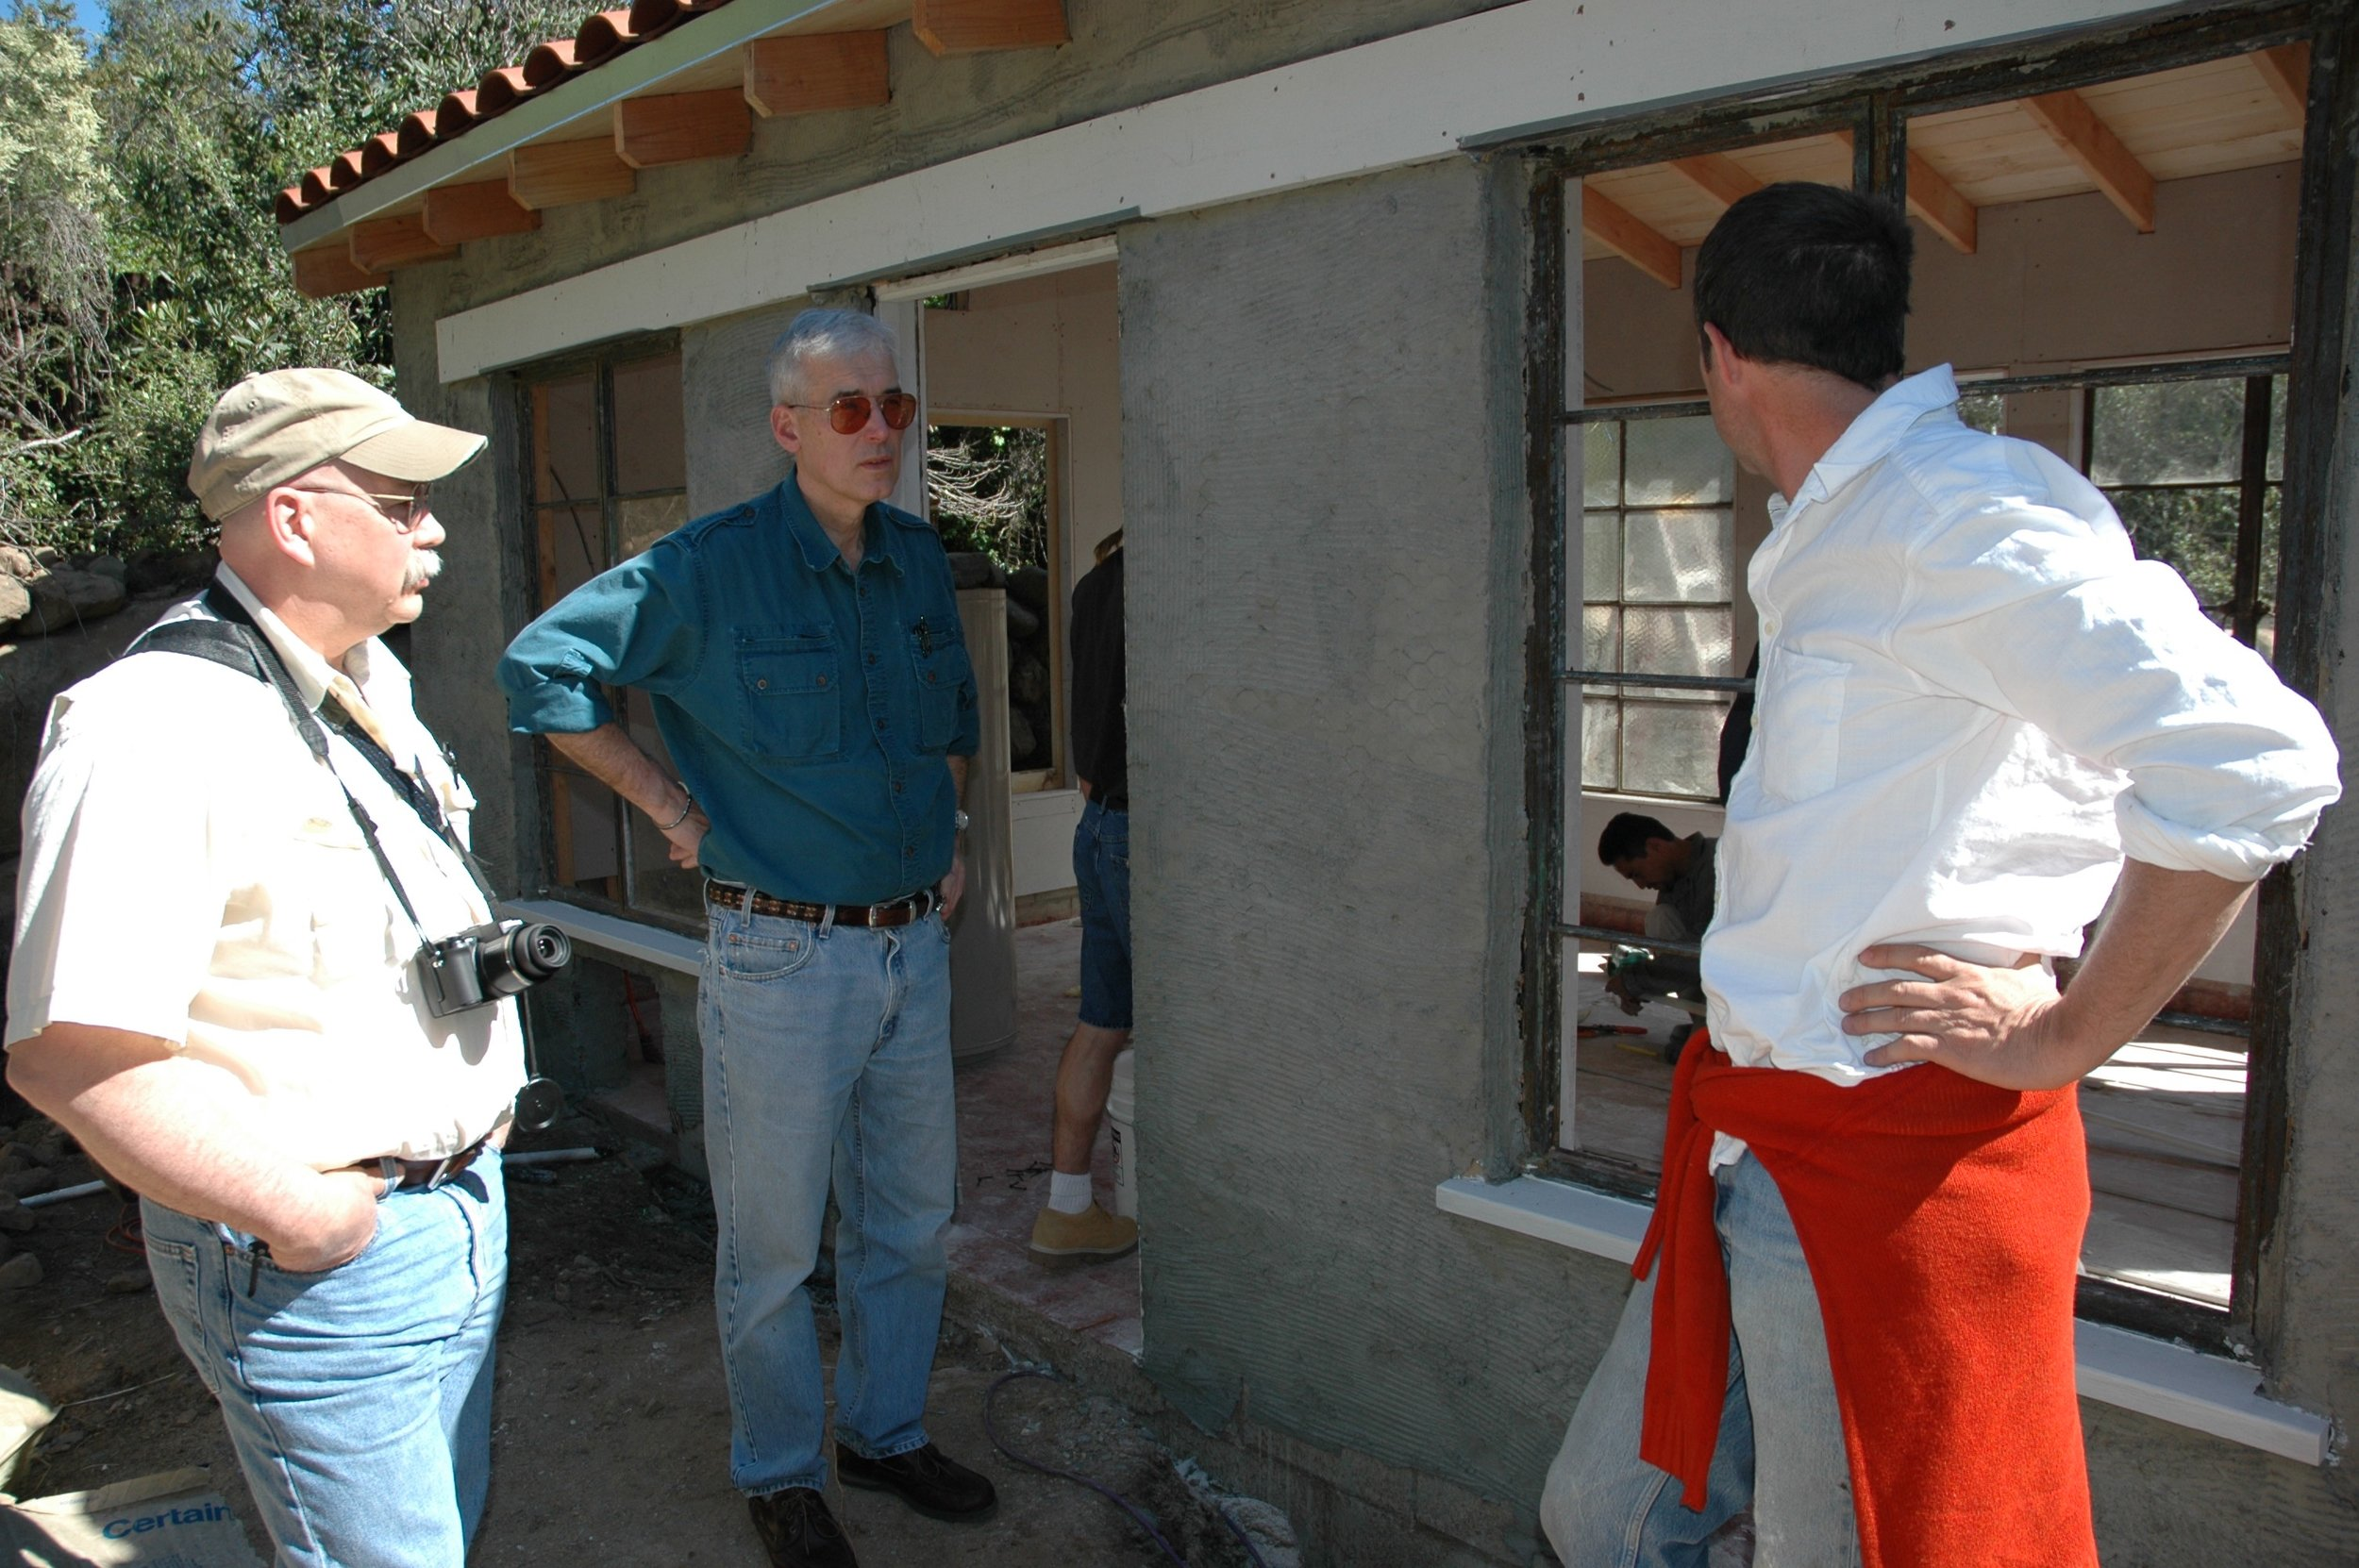 John Behler (center) inspects the animals' new home in California, constructed by Turtle Conservancy founder Eric Goode (right).